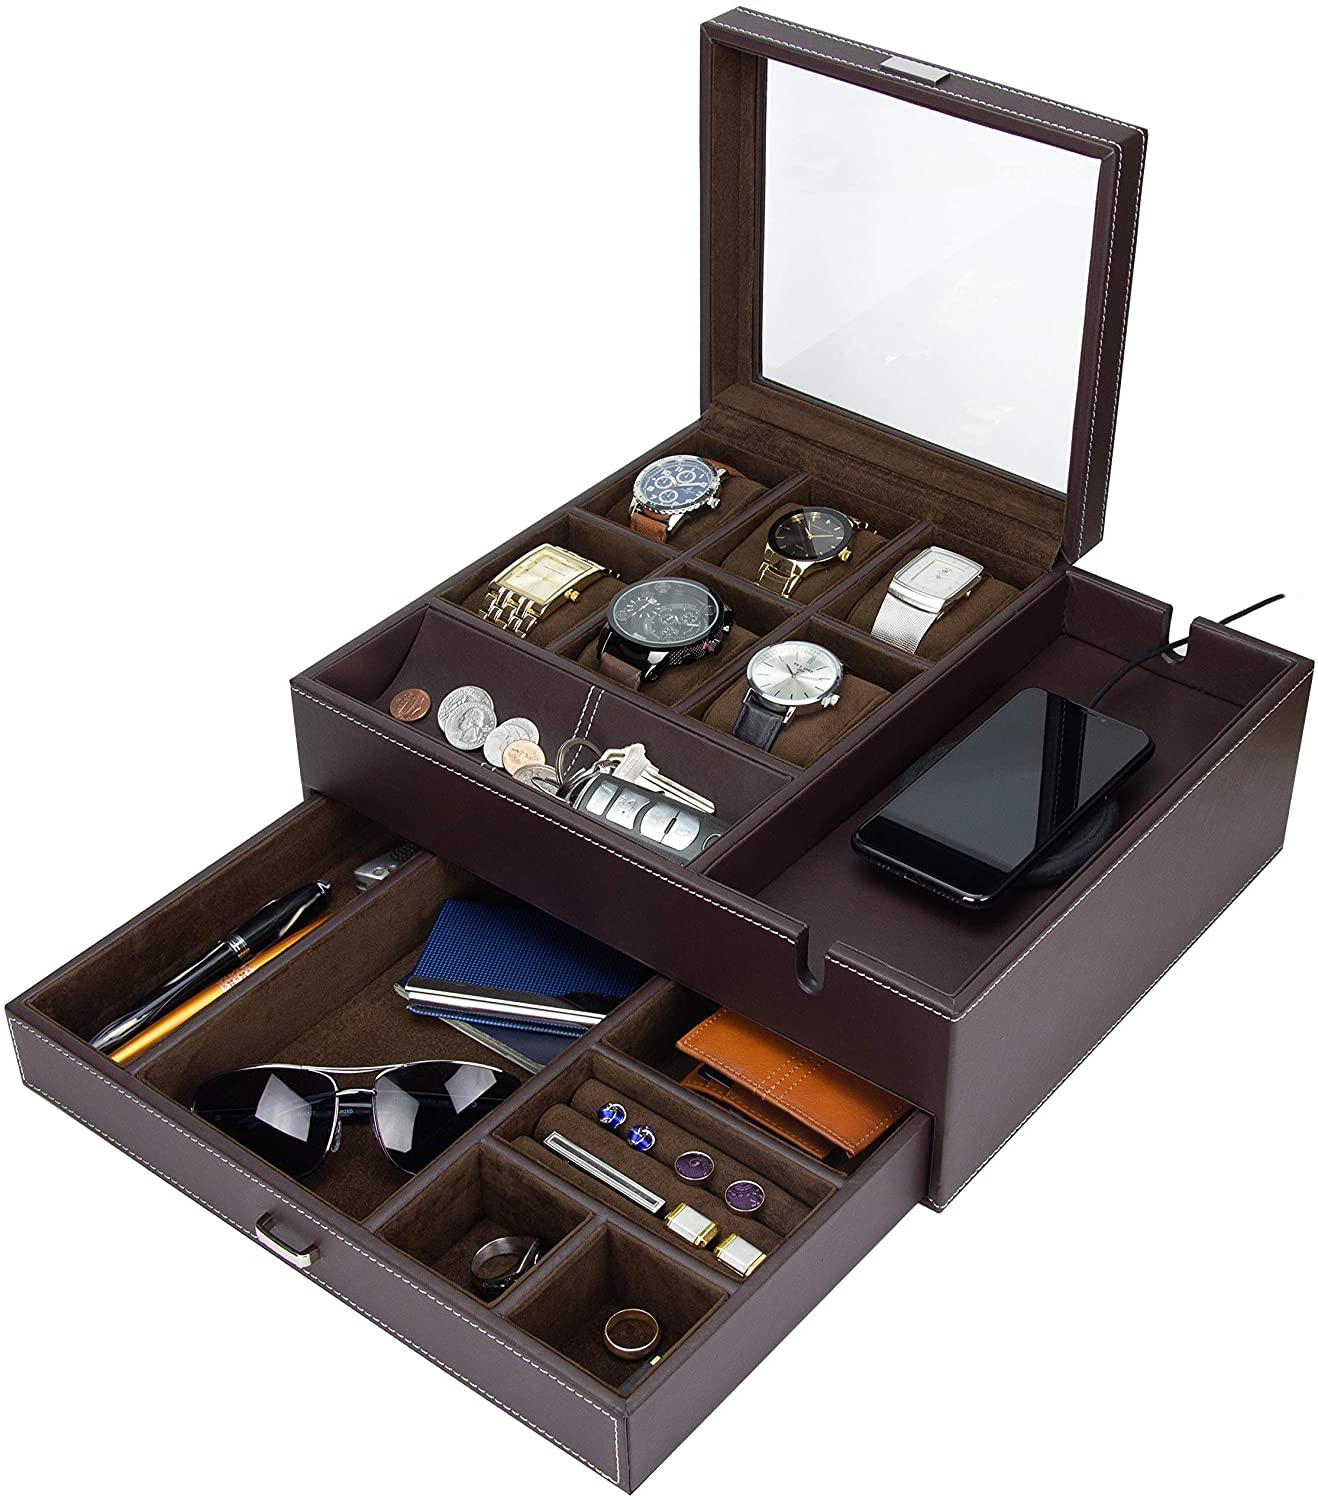 HOUNDSBAY Commander Dresser Valet Watch Box Case & Mens Jewelry Box Organizer with Smartphone Charging Station (Brown/Brown) : Clothing, Shoes & Jewelry